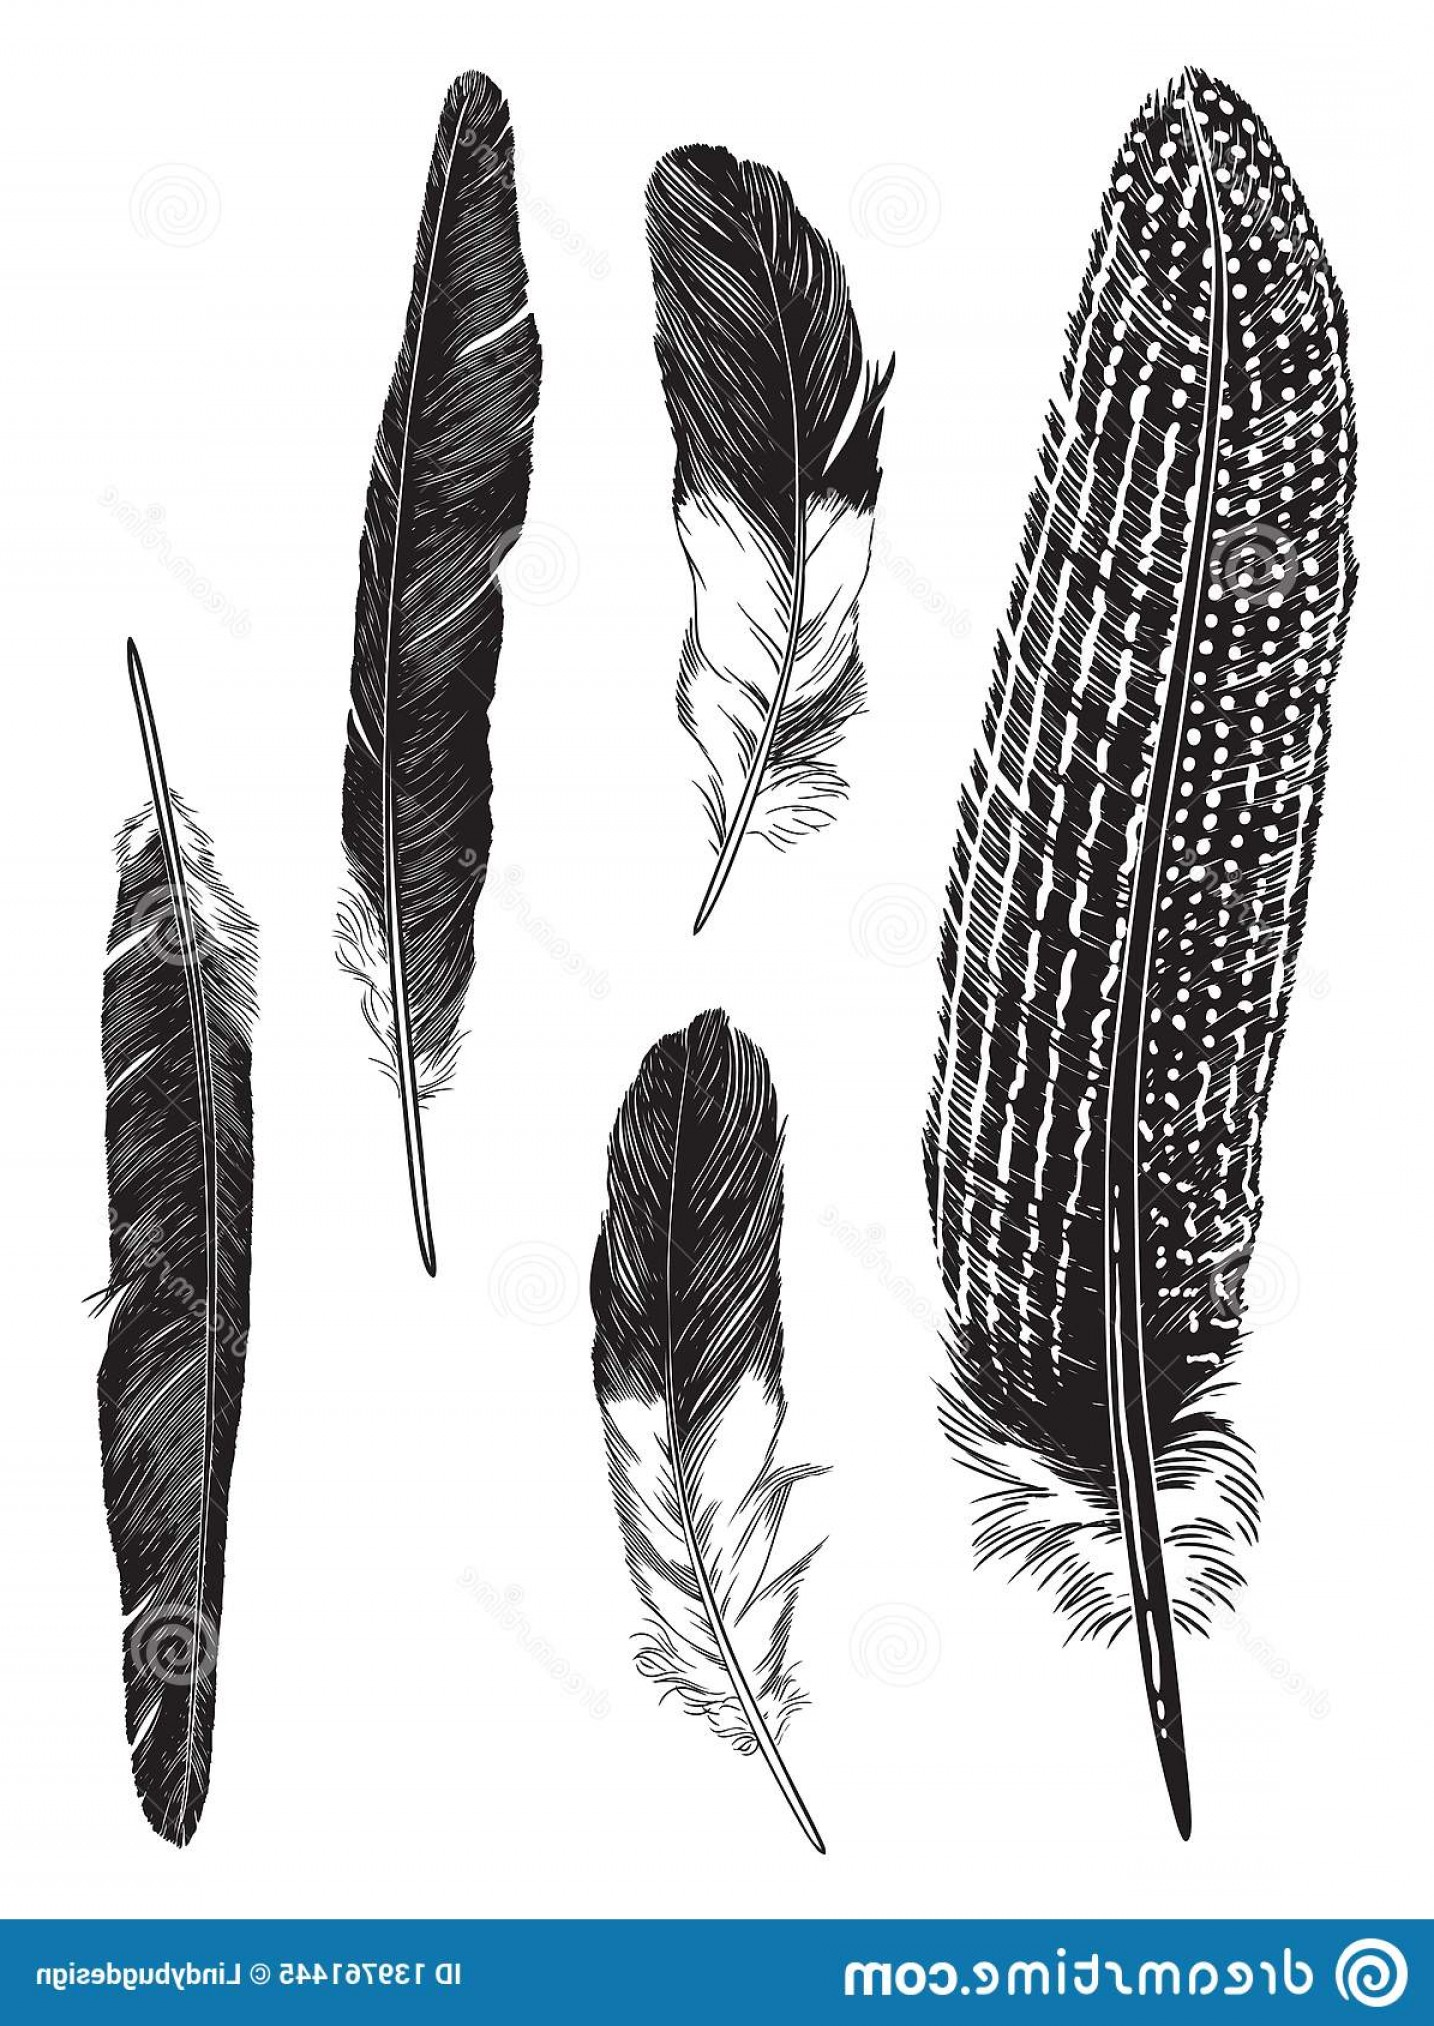 Vector Drawing Feathers: Pen Ink Illustration Five Feathers Detailed Vector Drawing Print Image